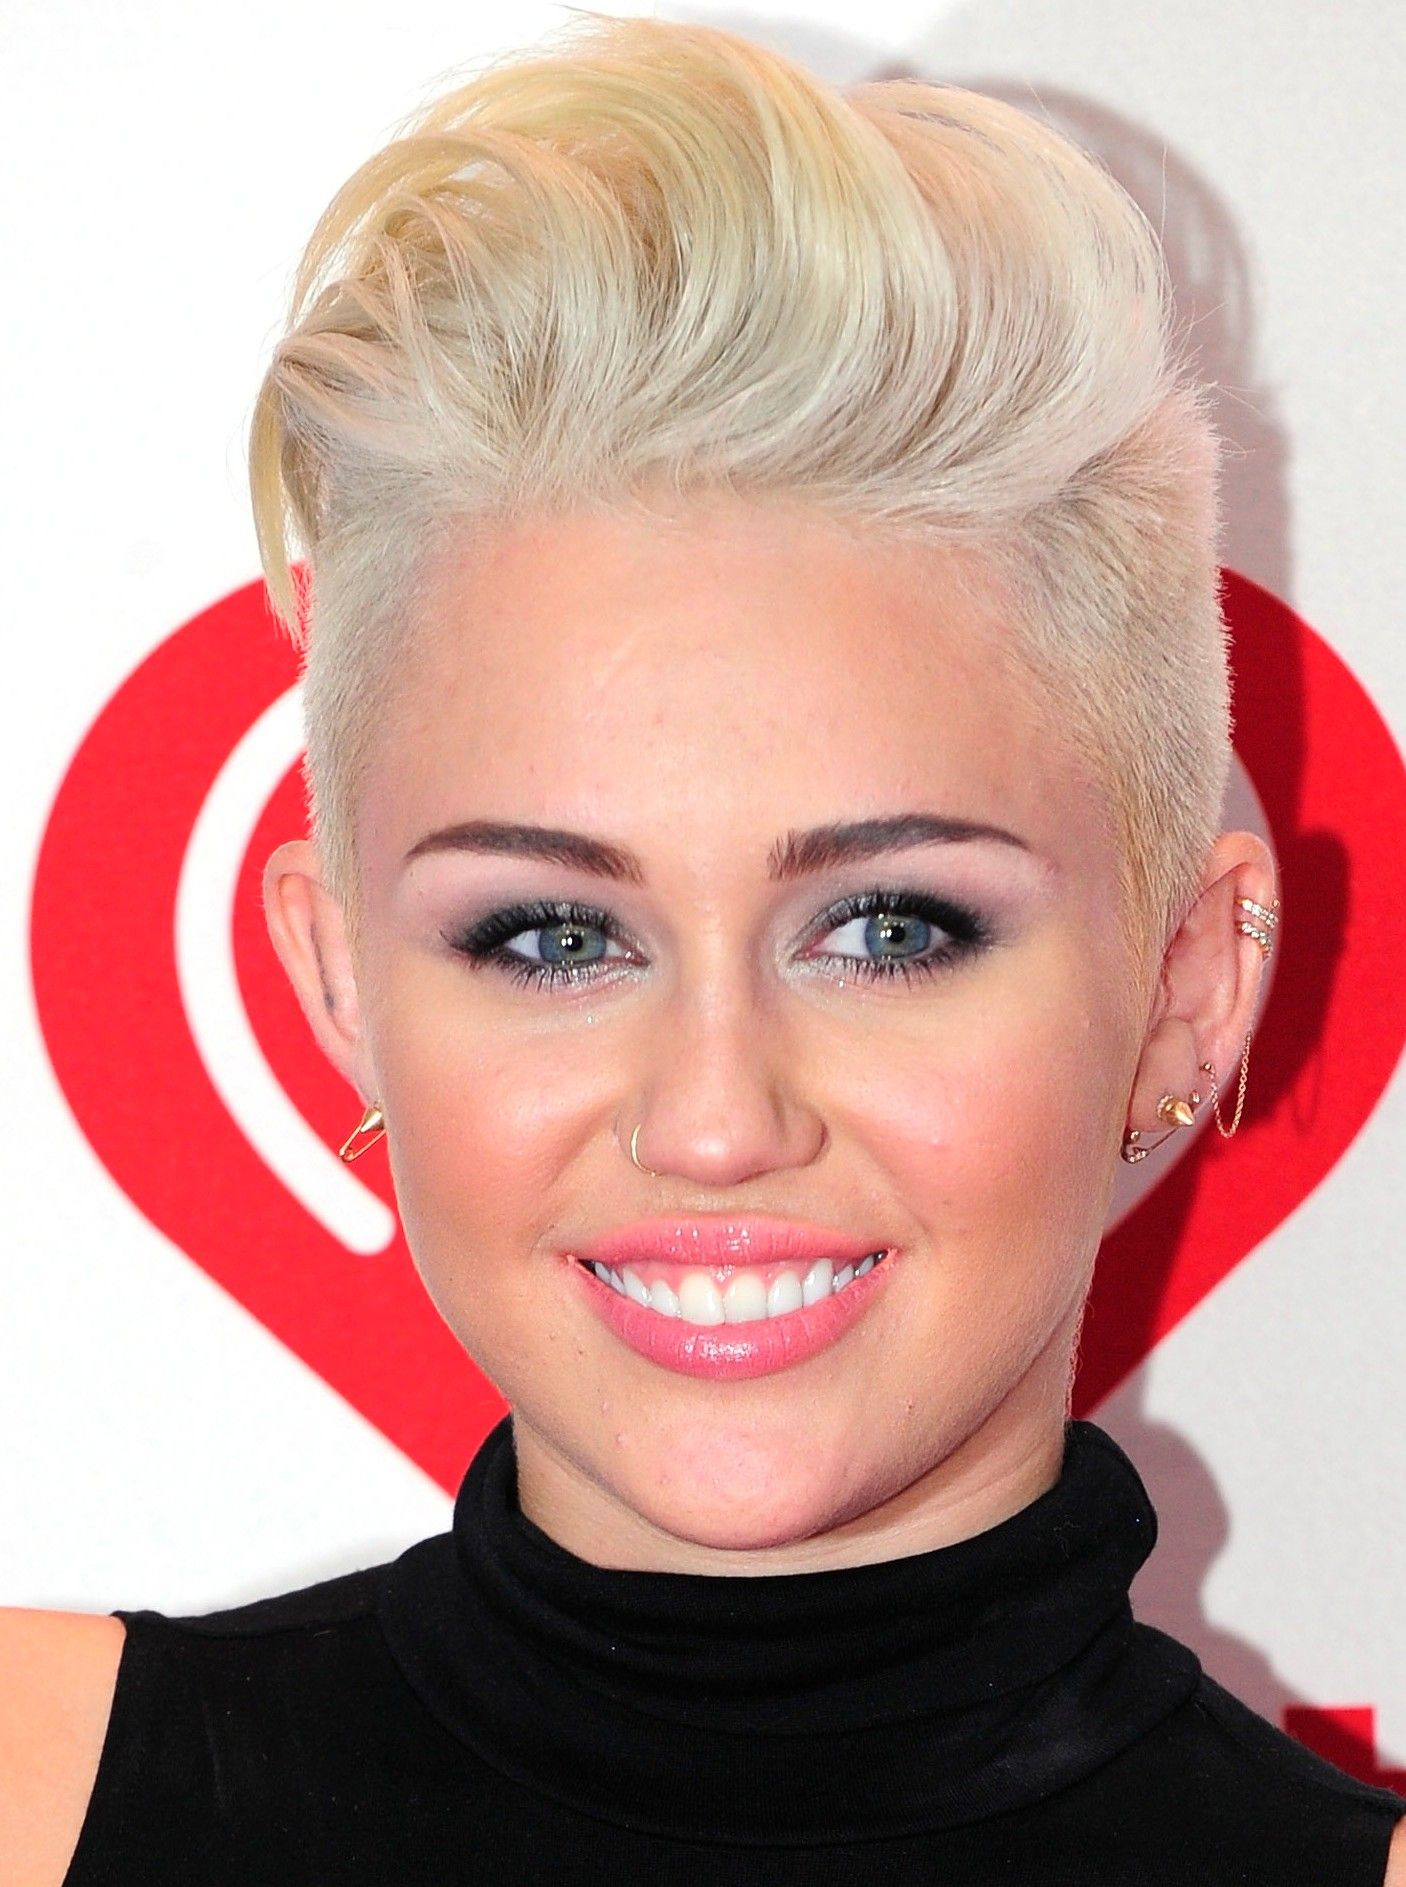 Miley Cyrus Hair Style miley cyrus short hairstyle hair pinterest short hairstyle 7099 by wearticles.com